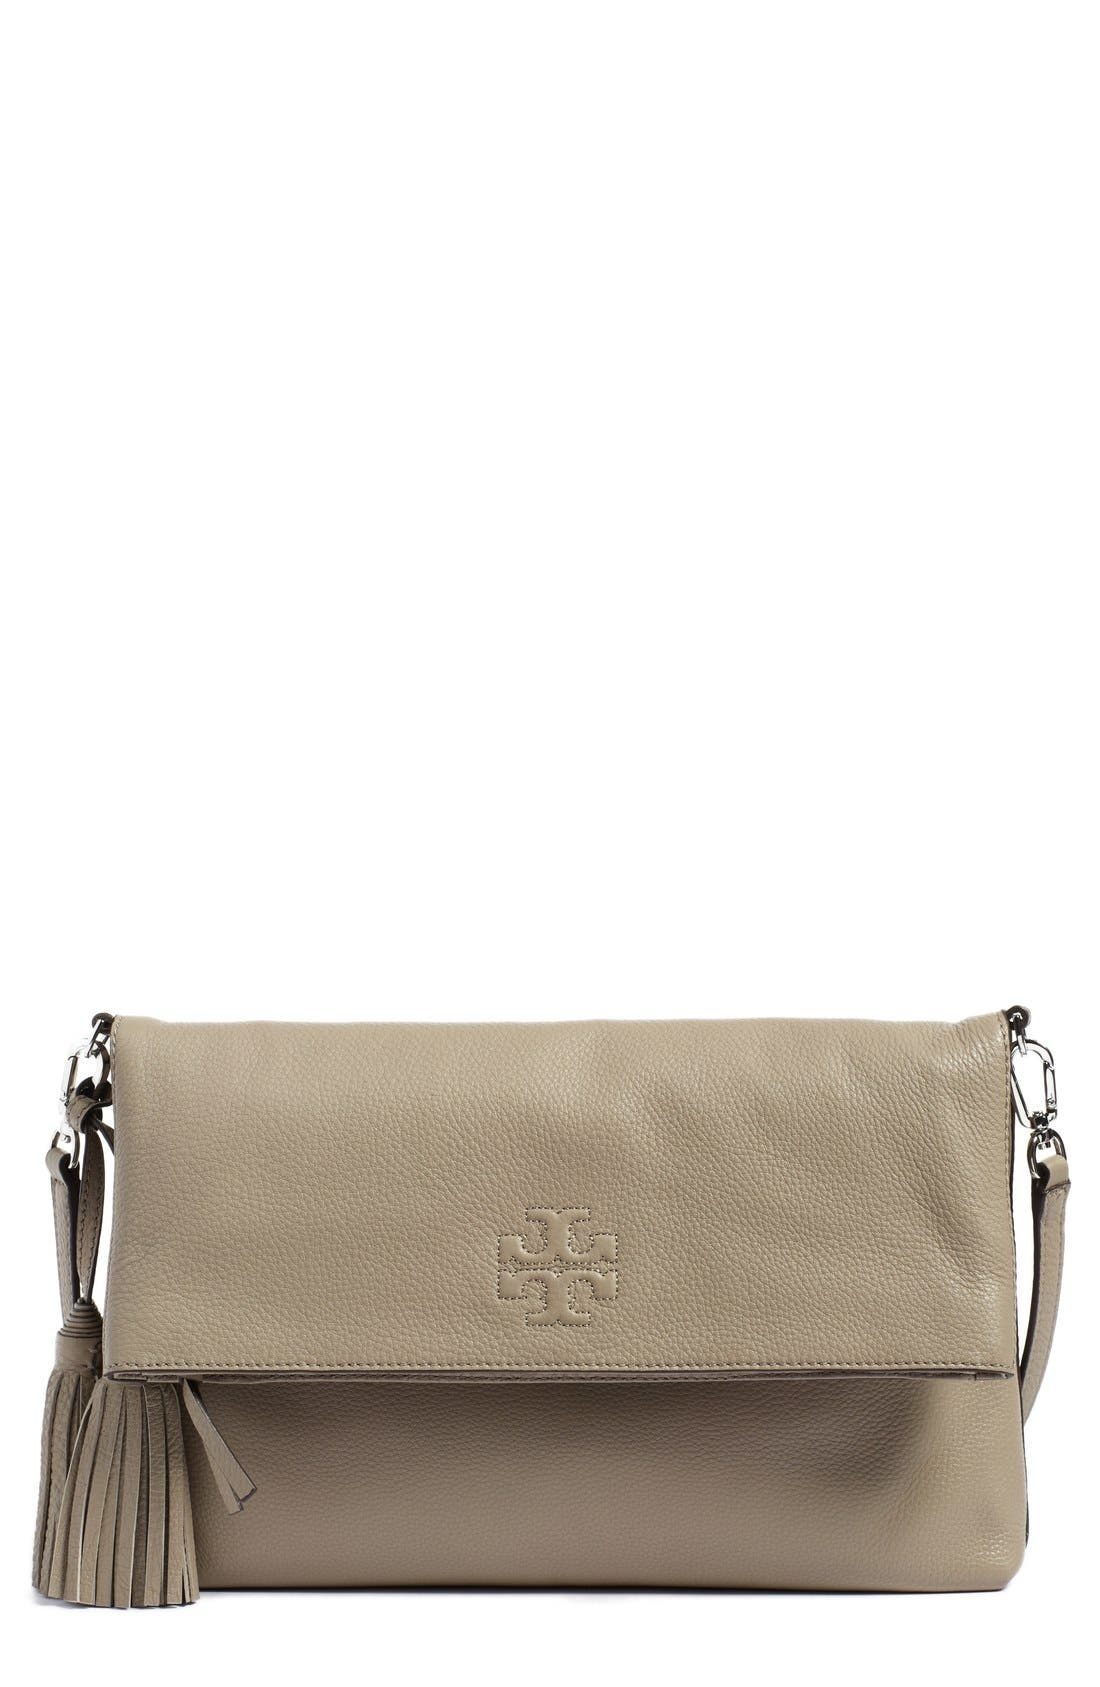 Alternate Image 1 Selected - Tory Burch 'Thea' Leather Foldover Crossbody Bag